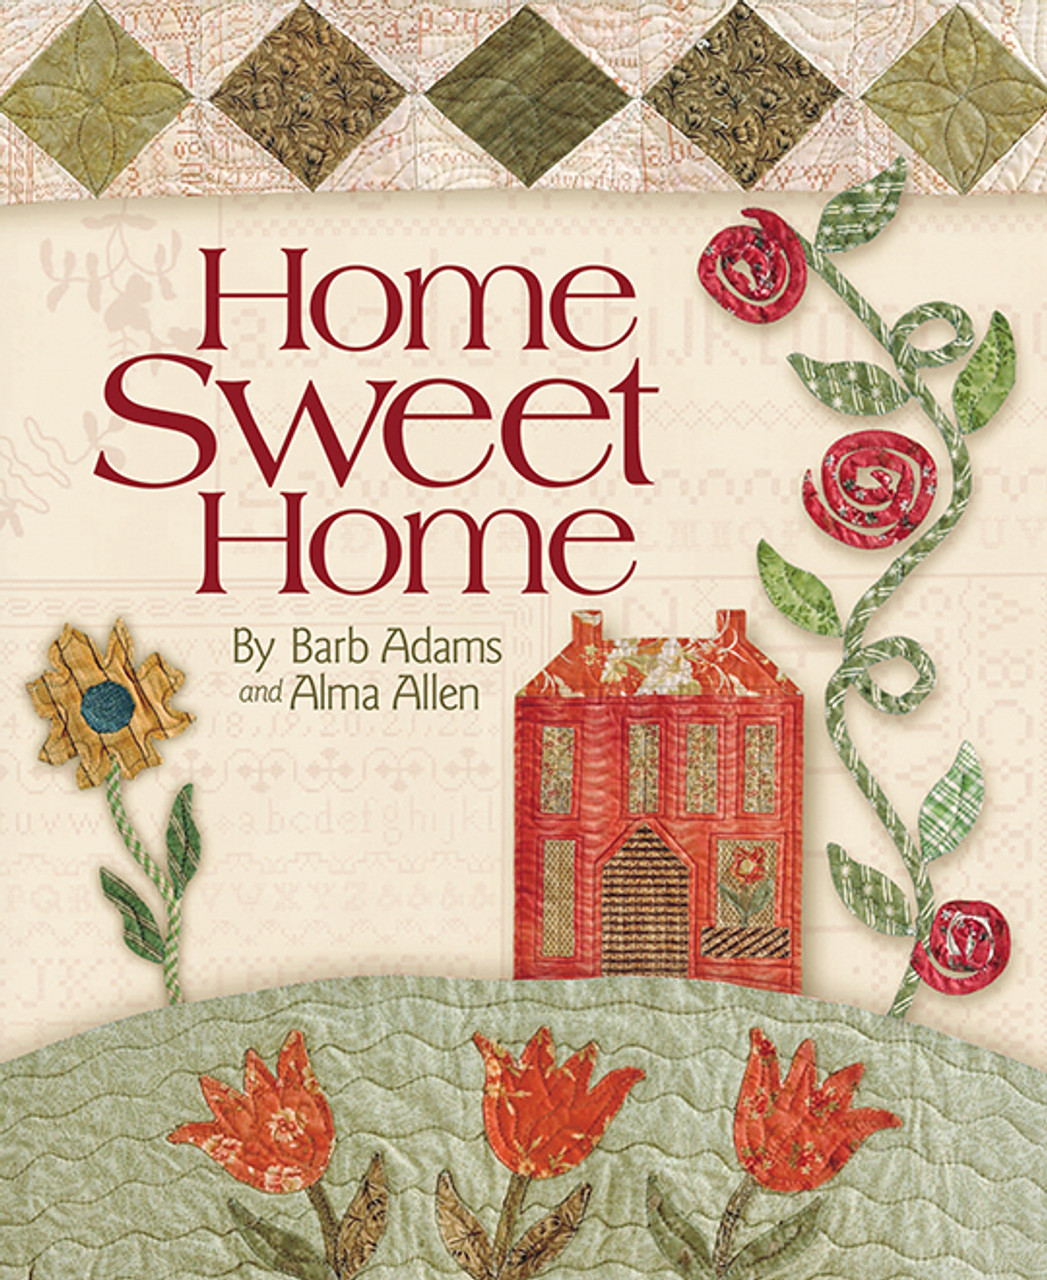 Home Sweet Home By Barb Adams And Alma Allen